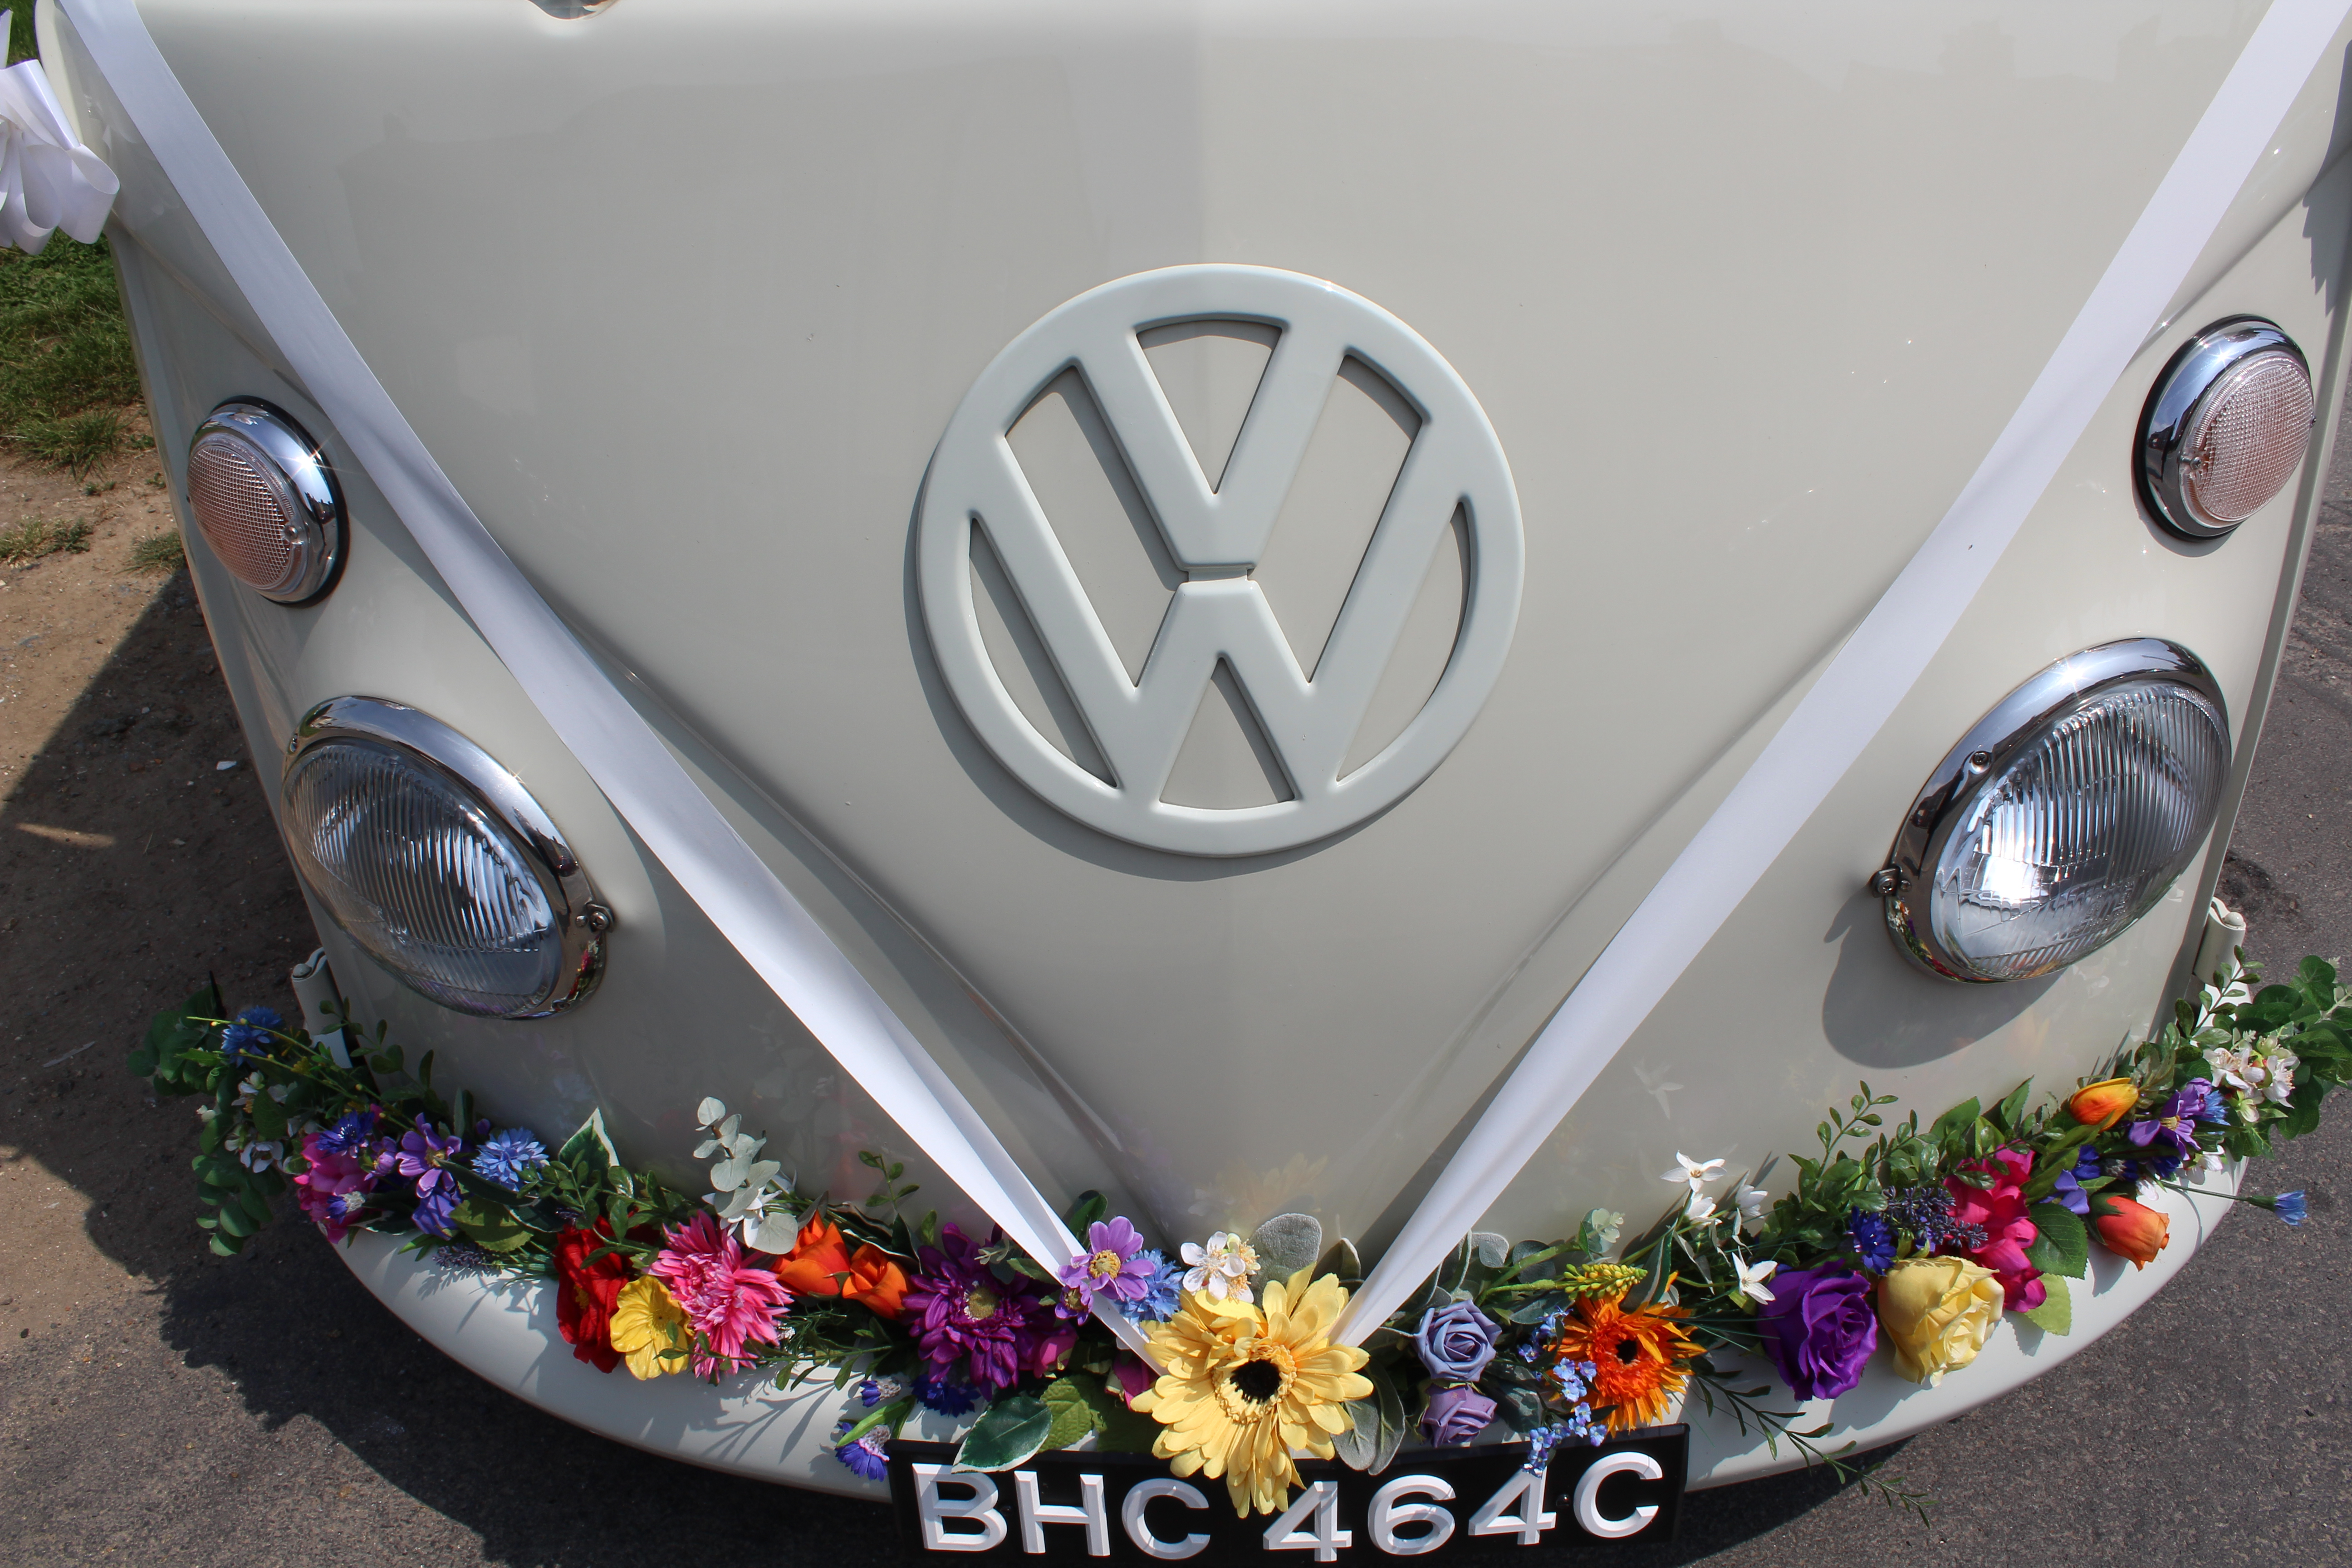 vw_wedding_car_8